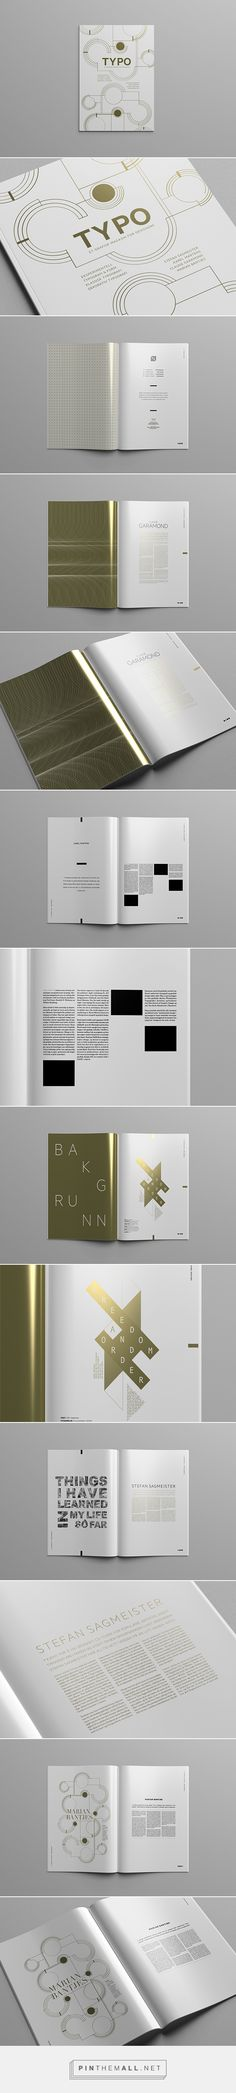 A good layout, designed to be spacious and clean. This beings across a modern feel. The foil print adds to the sophisticated modern theme.